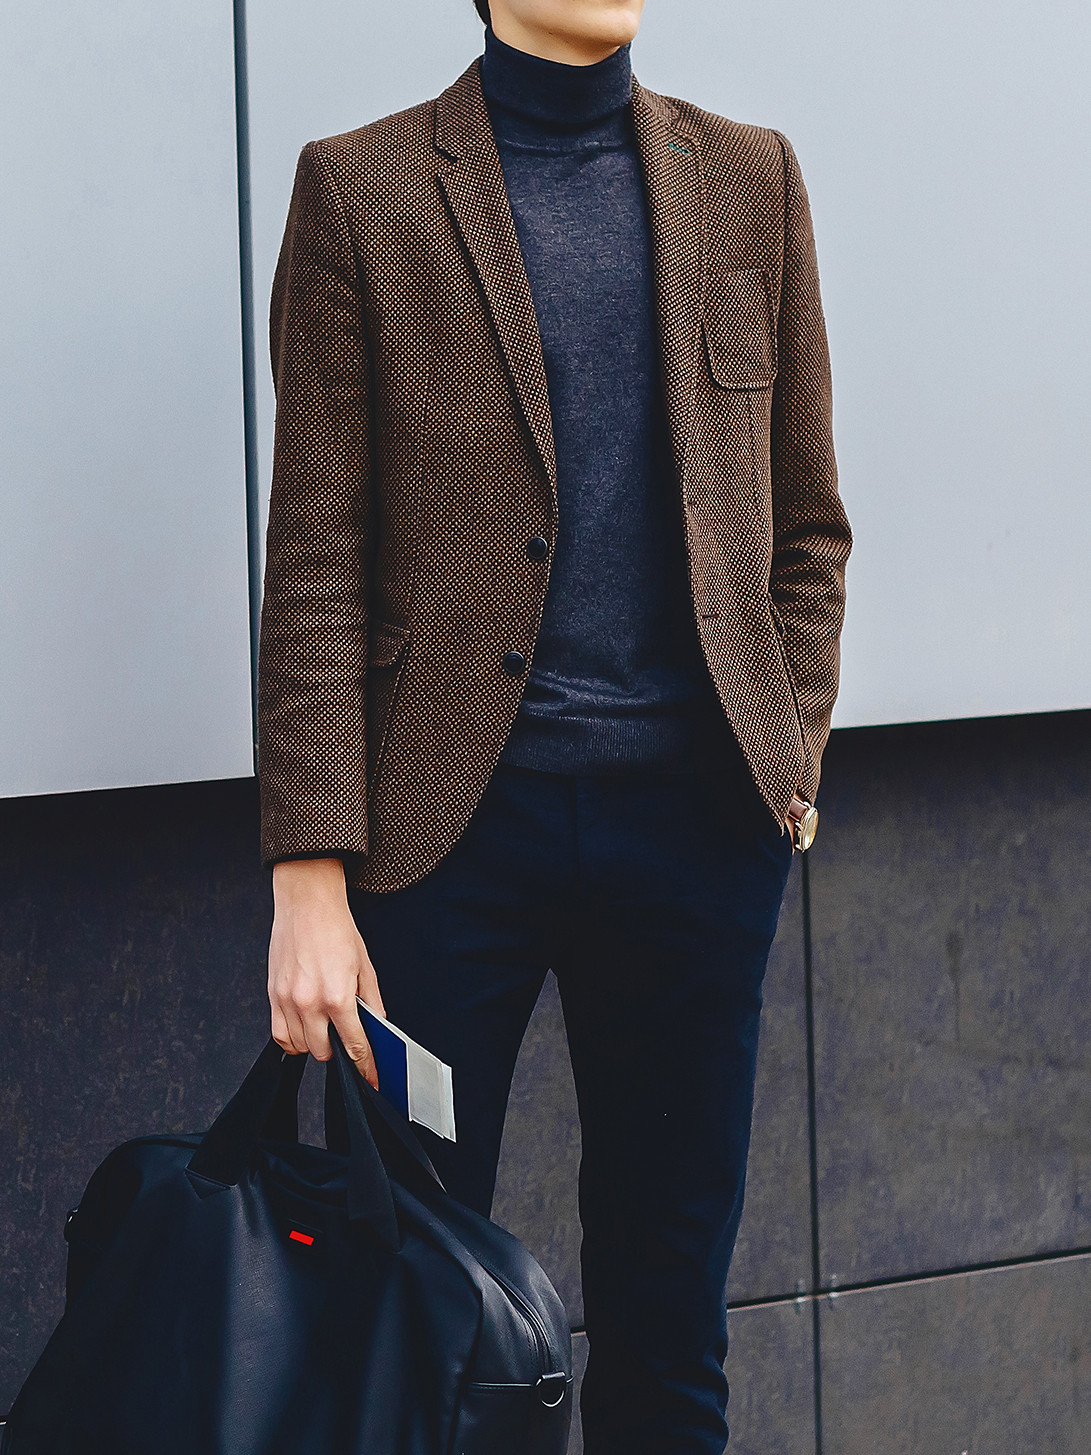 Men's outfit idea for 2021 with brown check blazer, navy cords, brown lace-up leather boots. Suitable for autumn and winter.